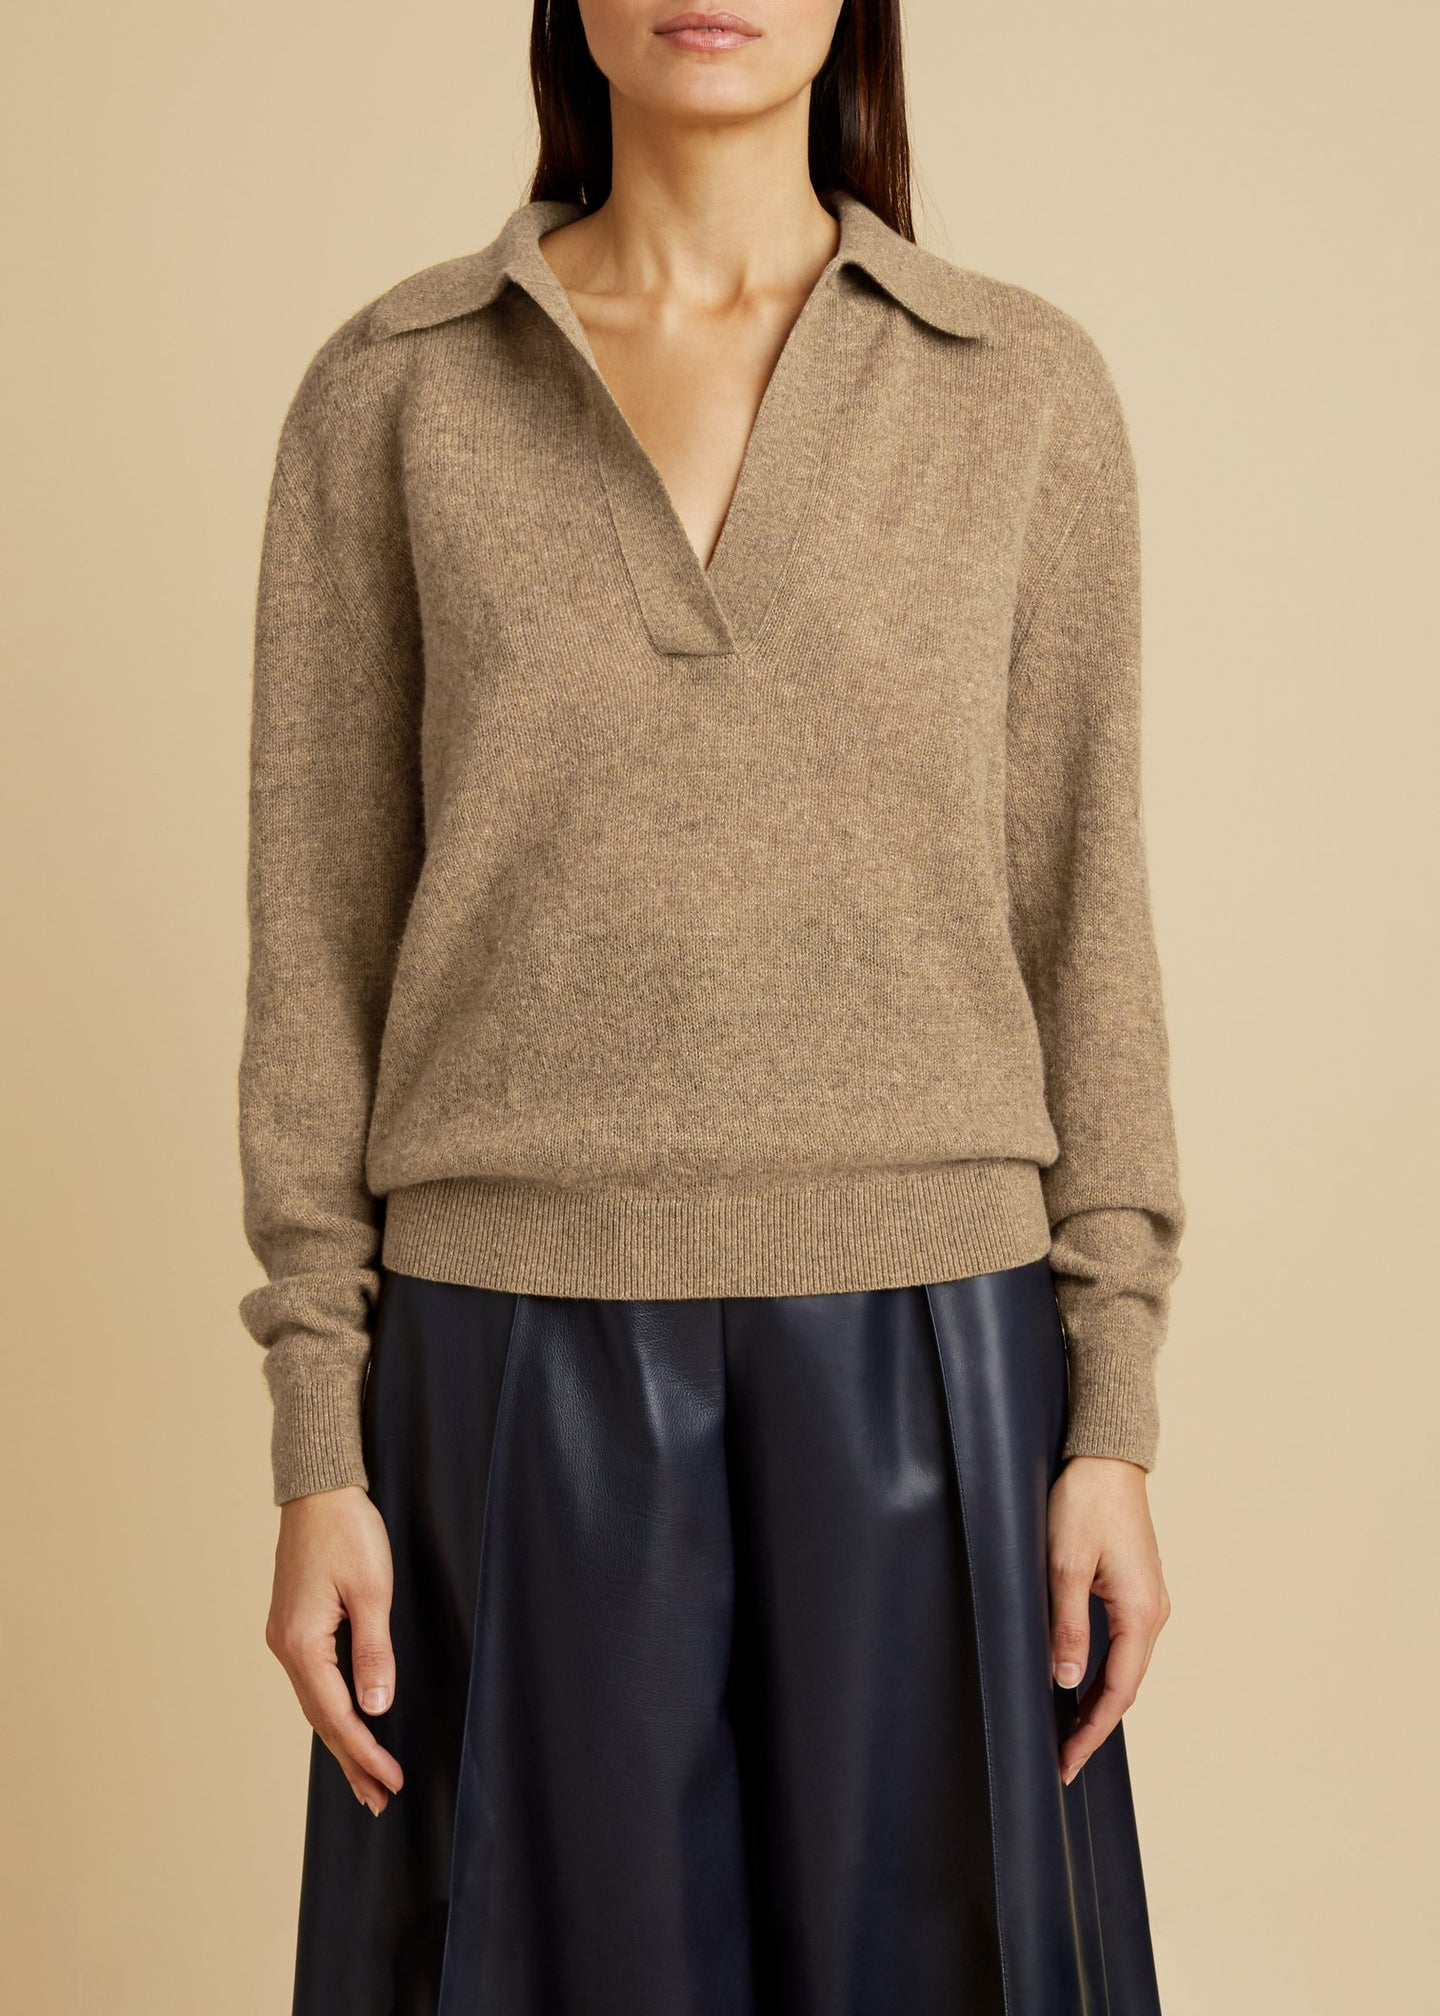 Khaite Jo Polo Neck Sweater